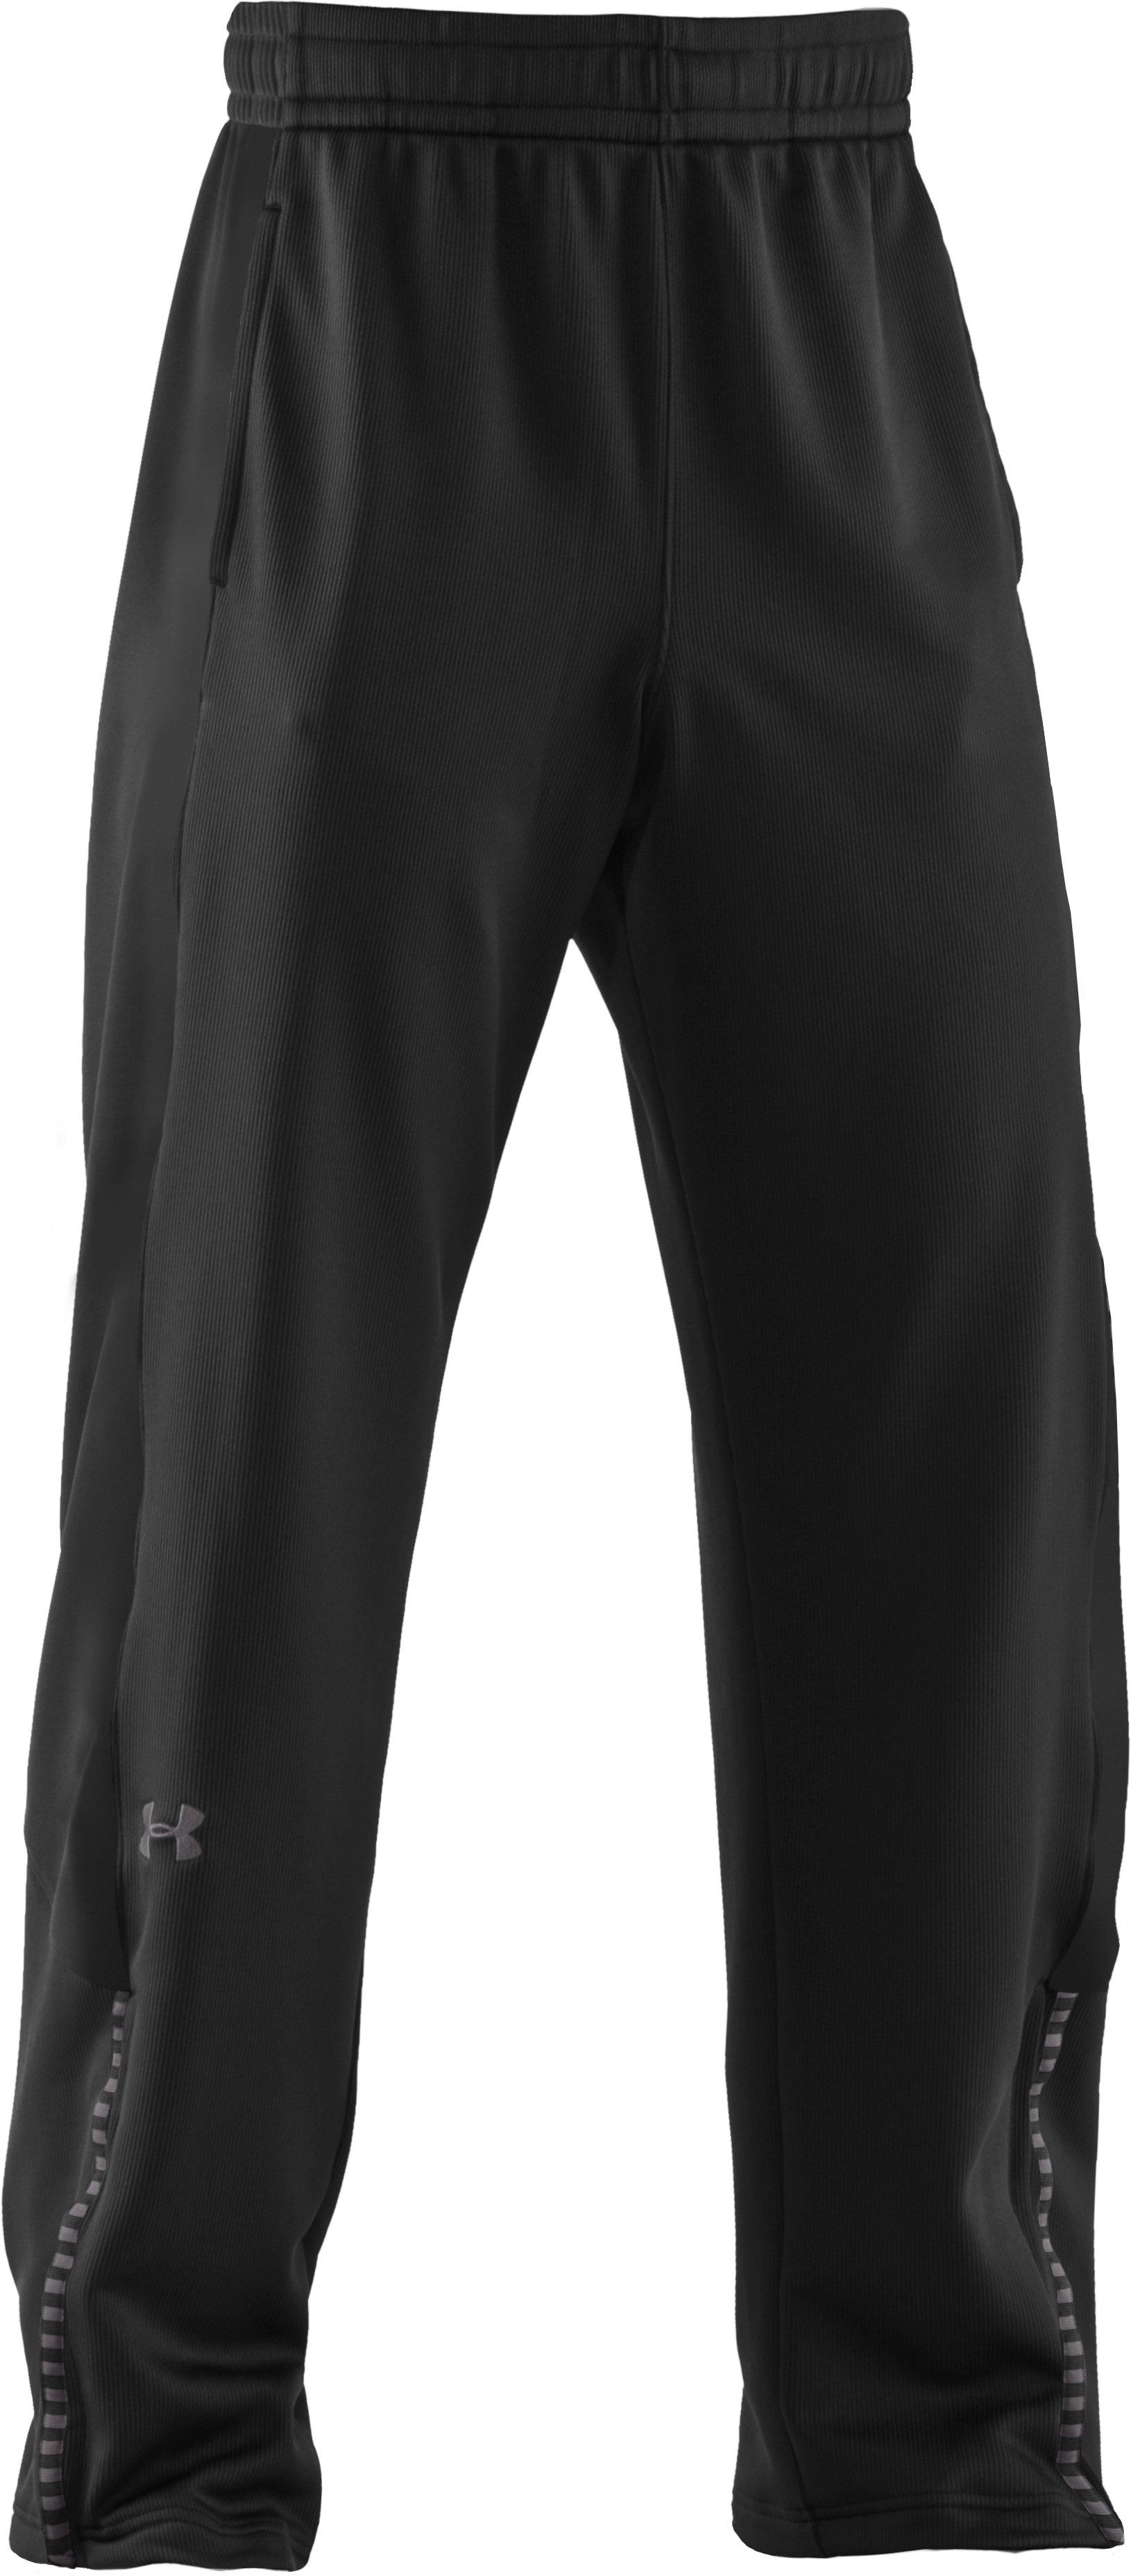 Men's UA Exceed Warm-Up Pants, Black , undefined